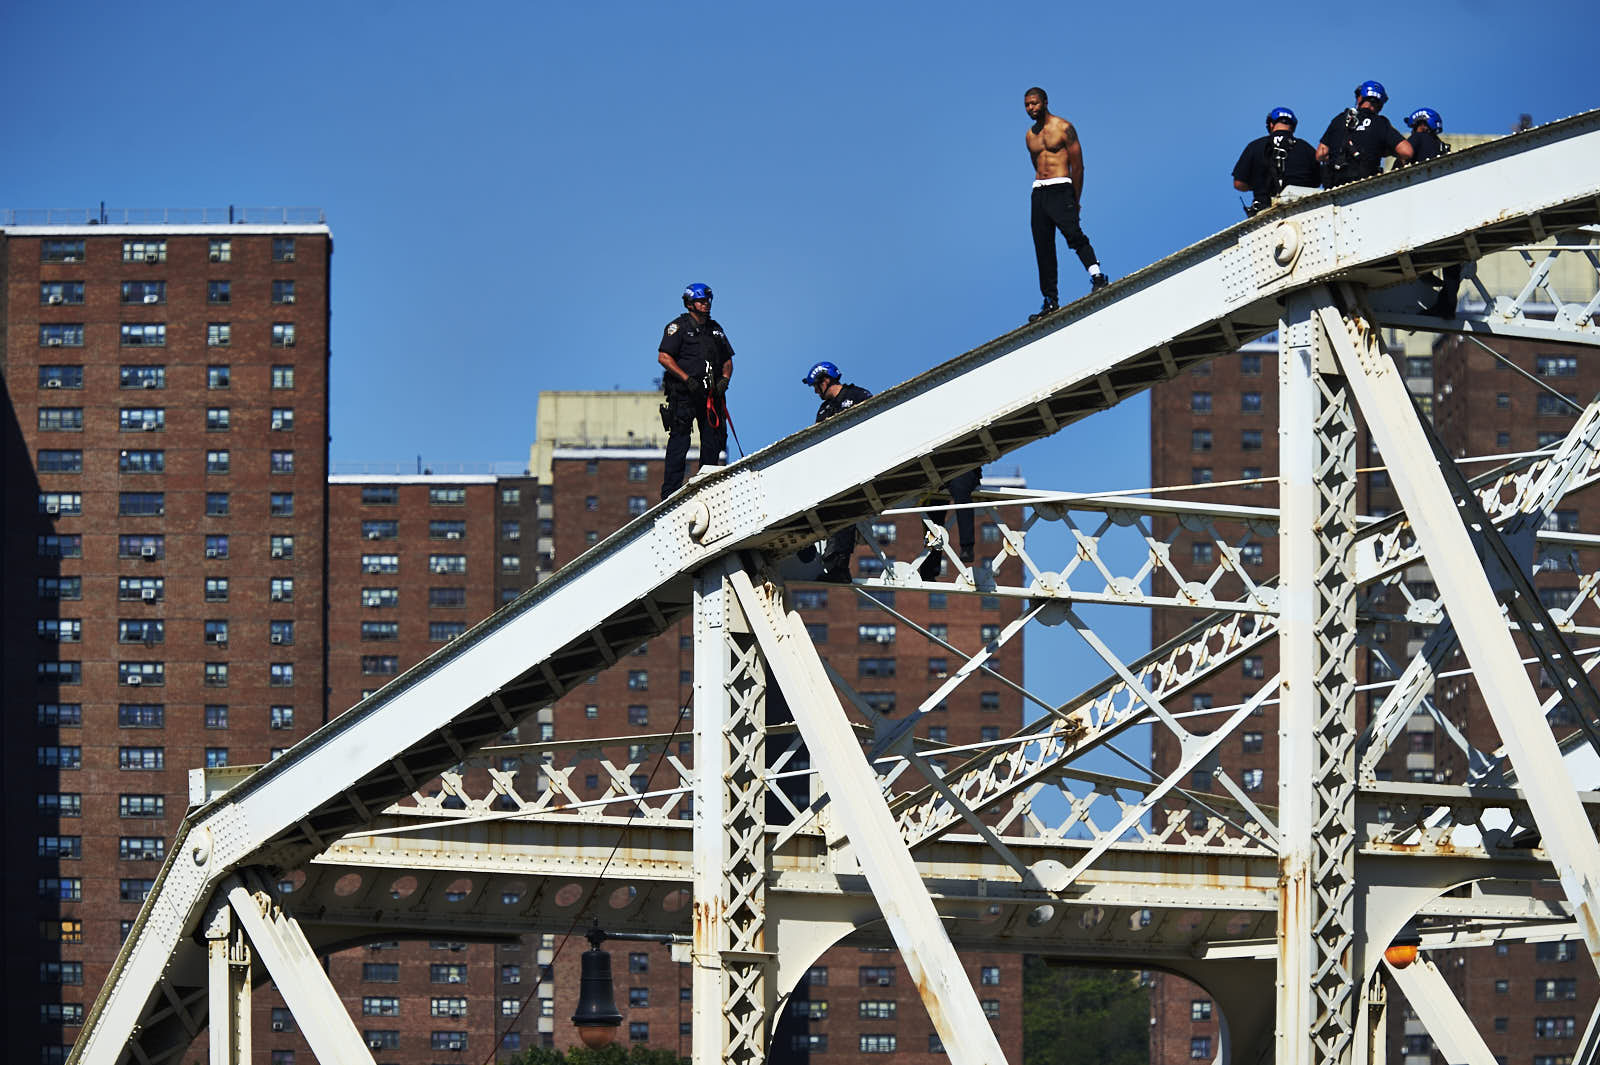 Police officers speak to a man who climbed the Macombs Dam Bridge on Wednesday, September 14, 2016 in the Bronx, N.Y.  The man was taken into custody and transported to a hospital for evaluation.